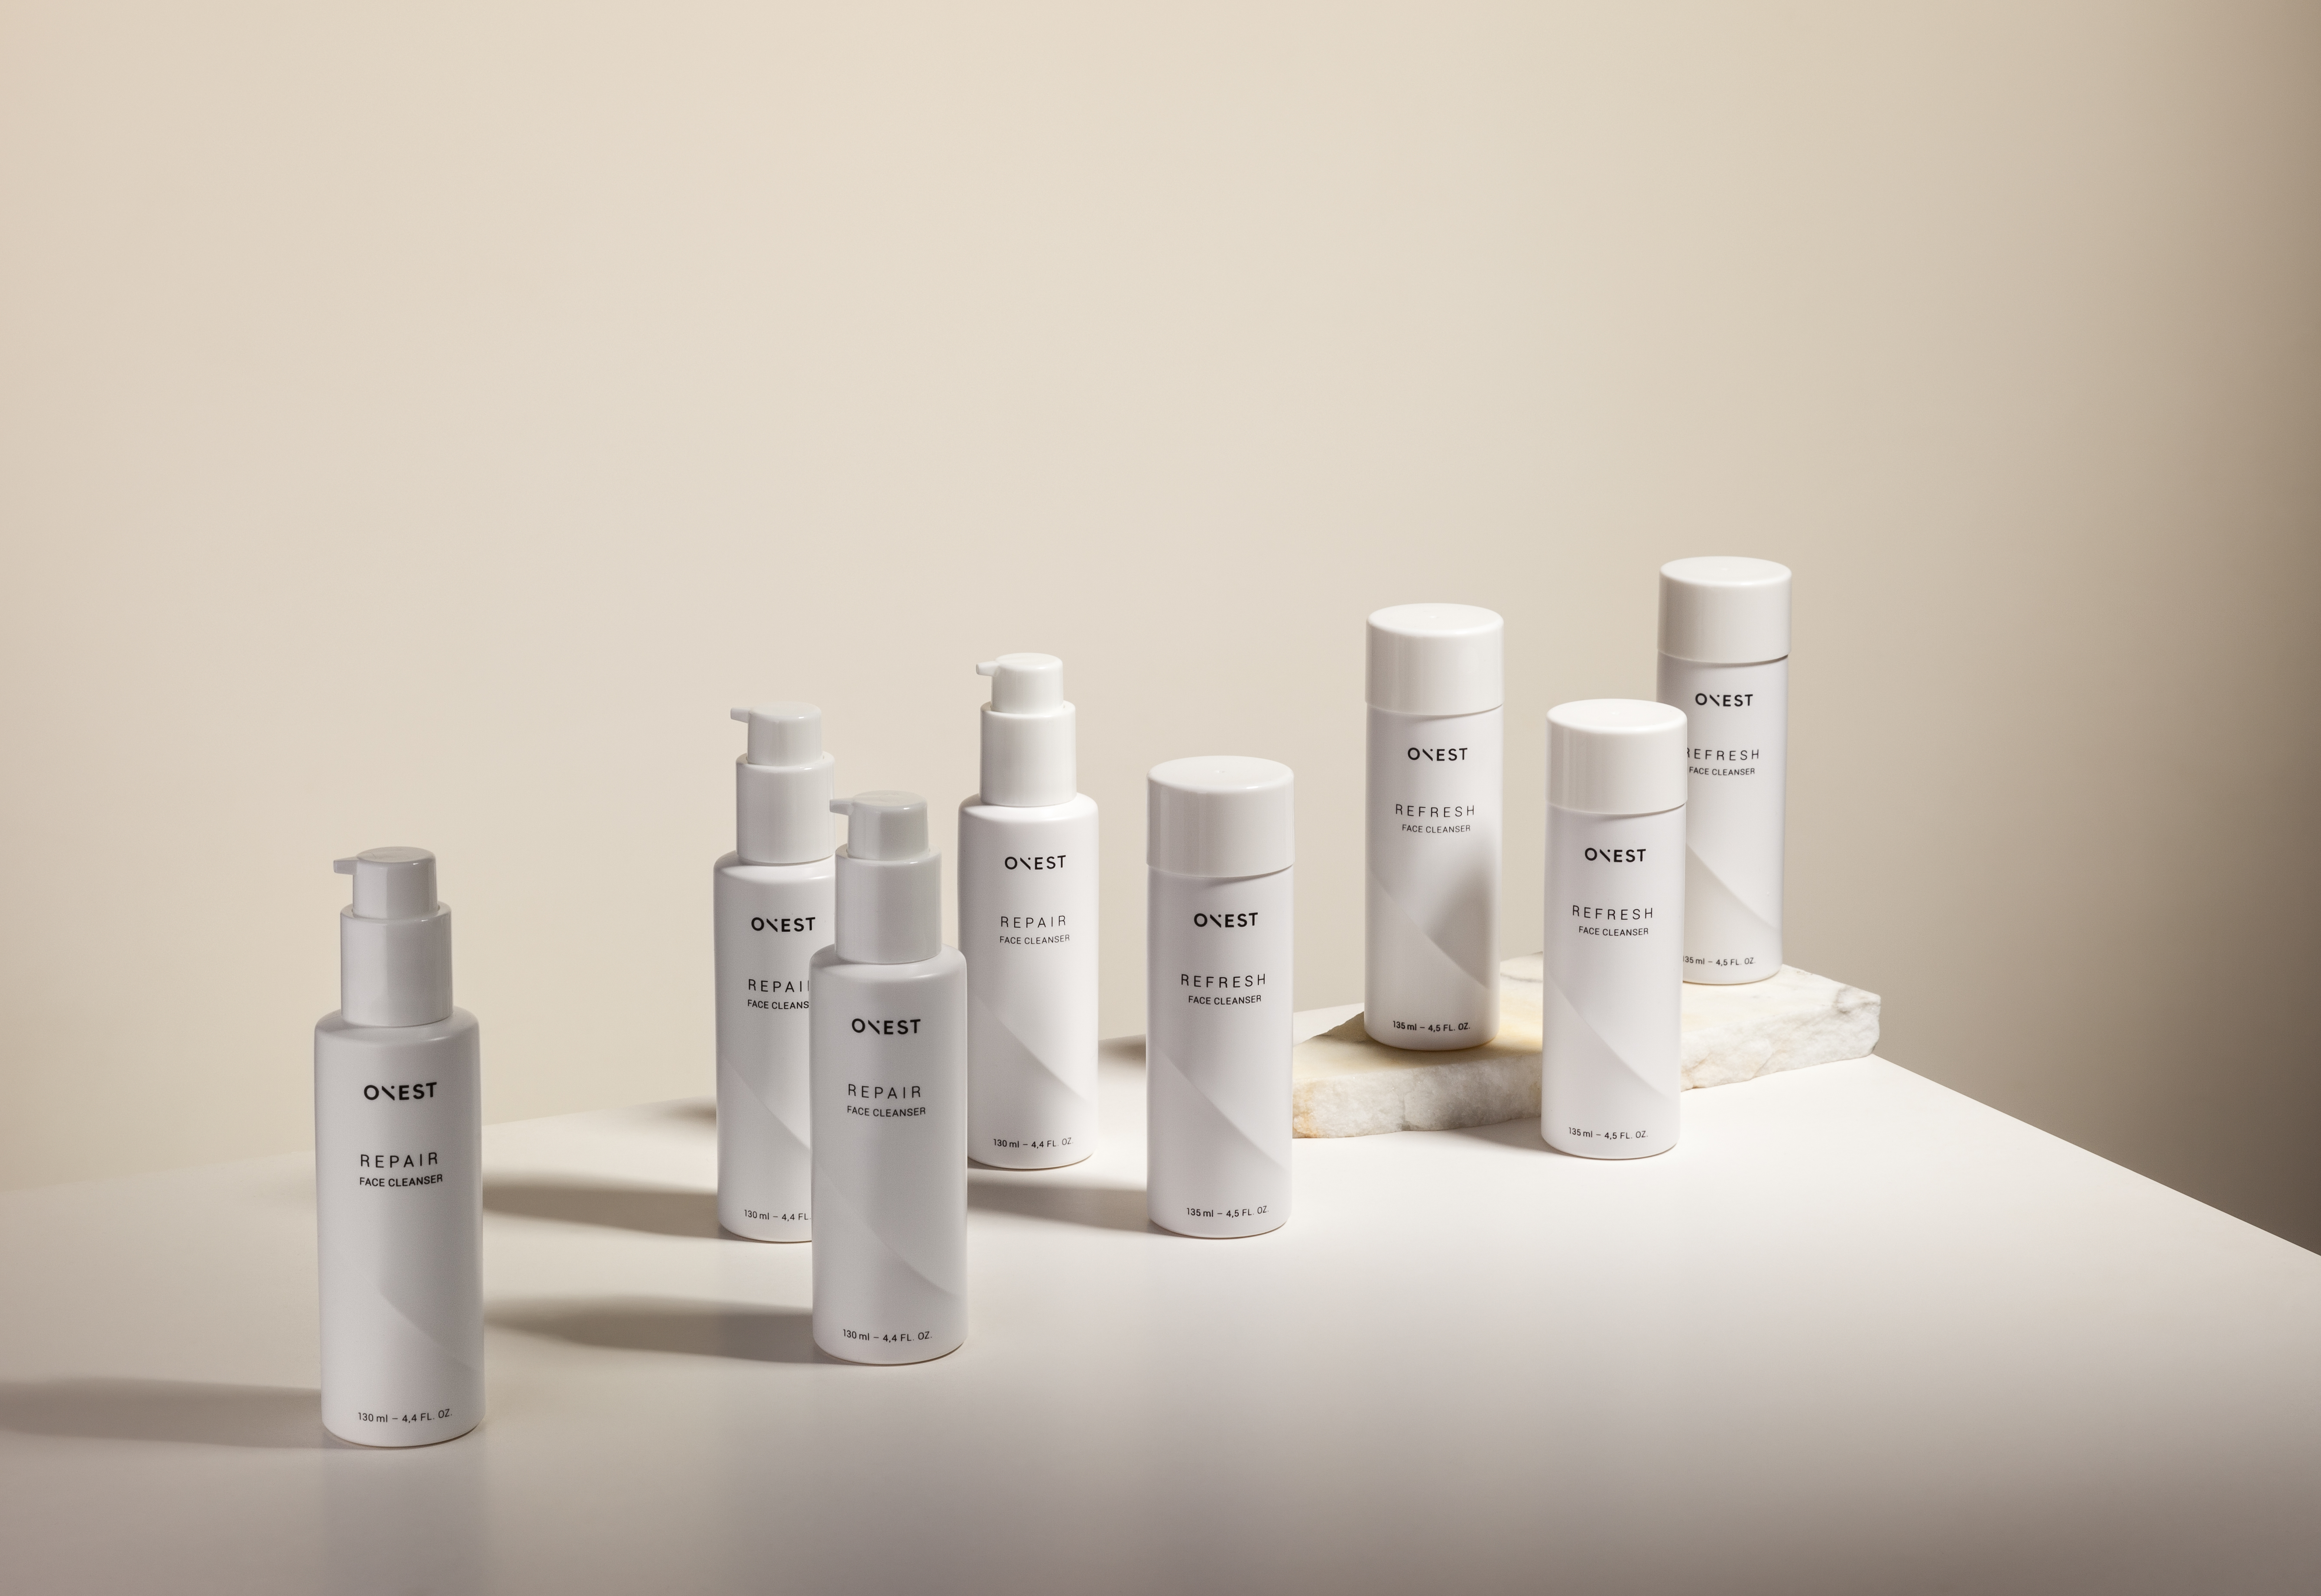 6 ONEST Cleansers GROUP